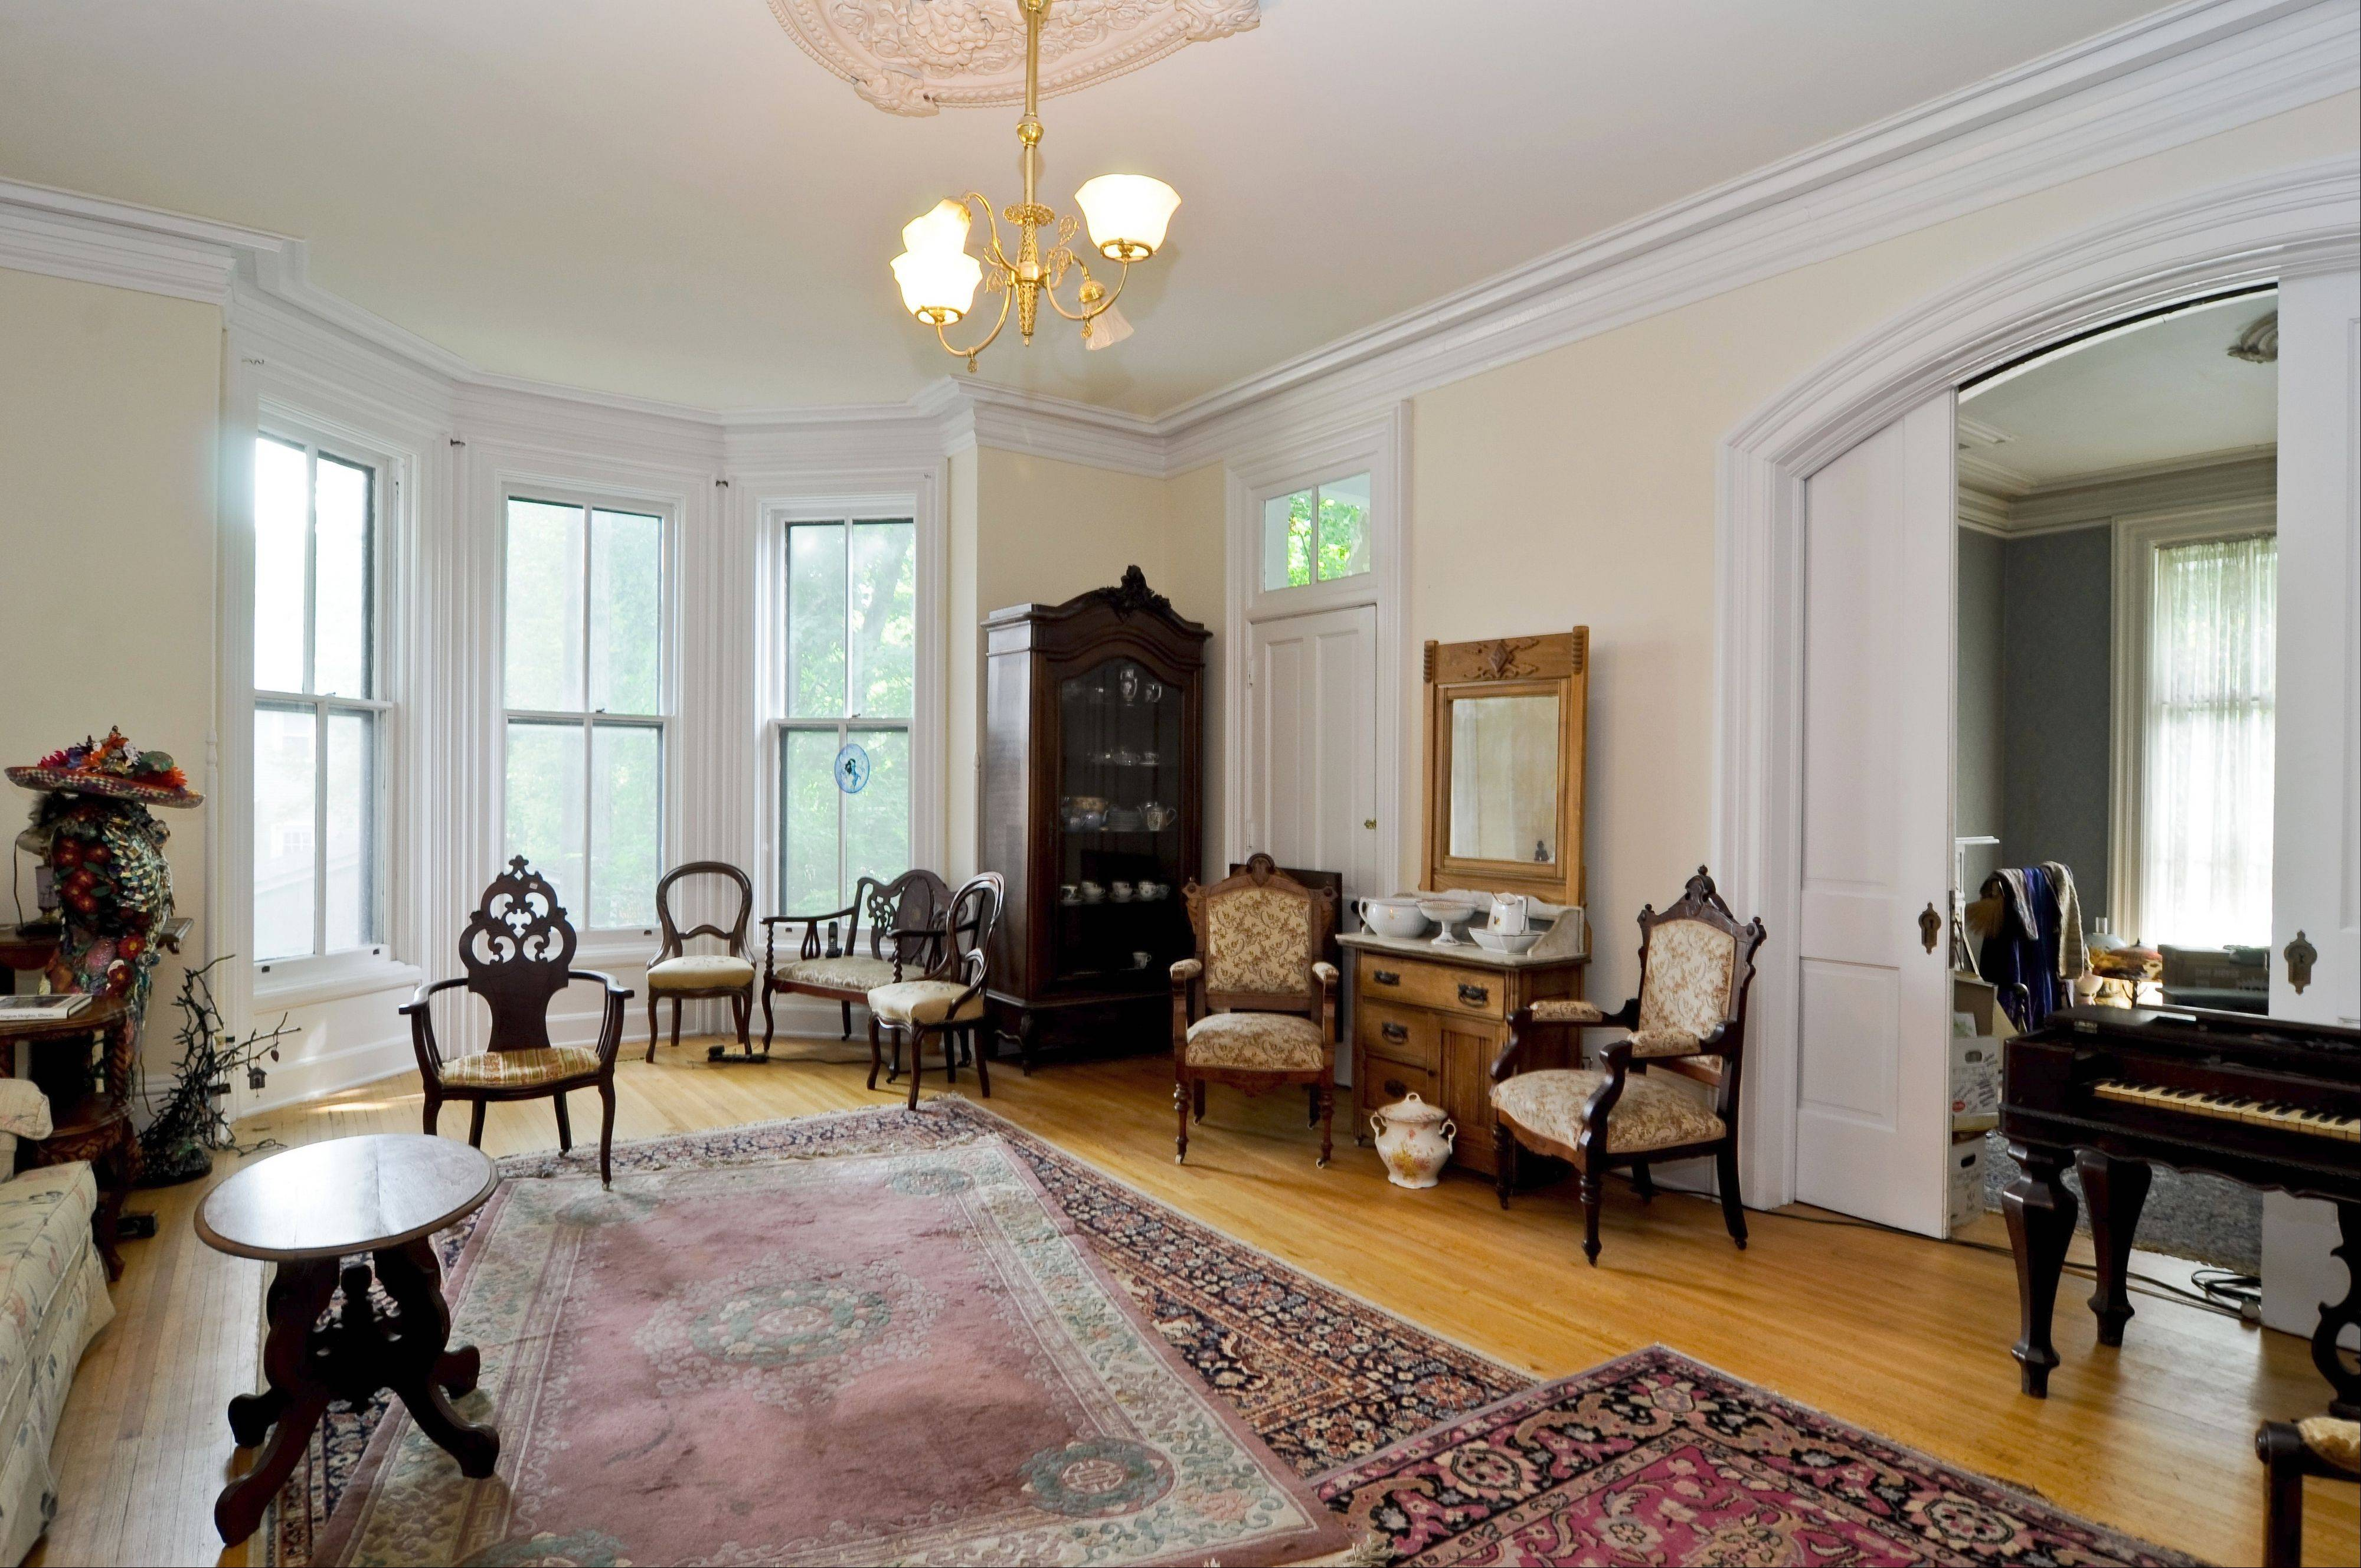 Arched pocket doors in the living room are original to the home, built in 1871.